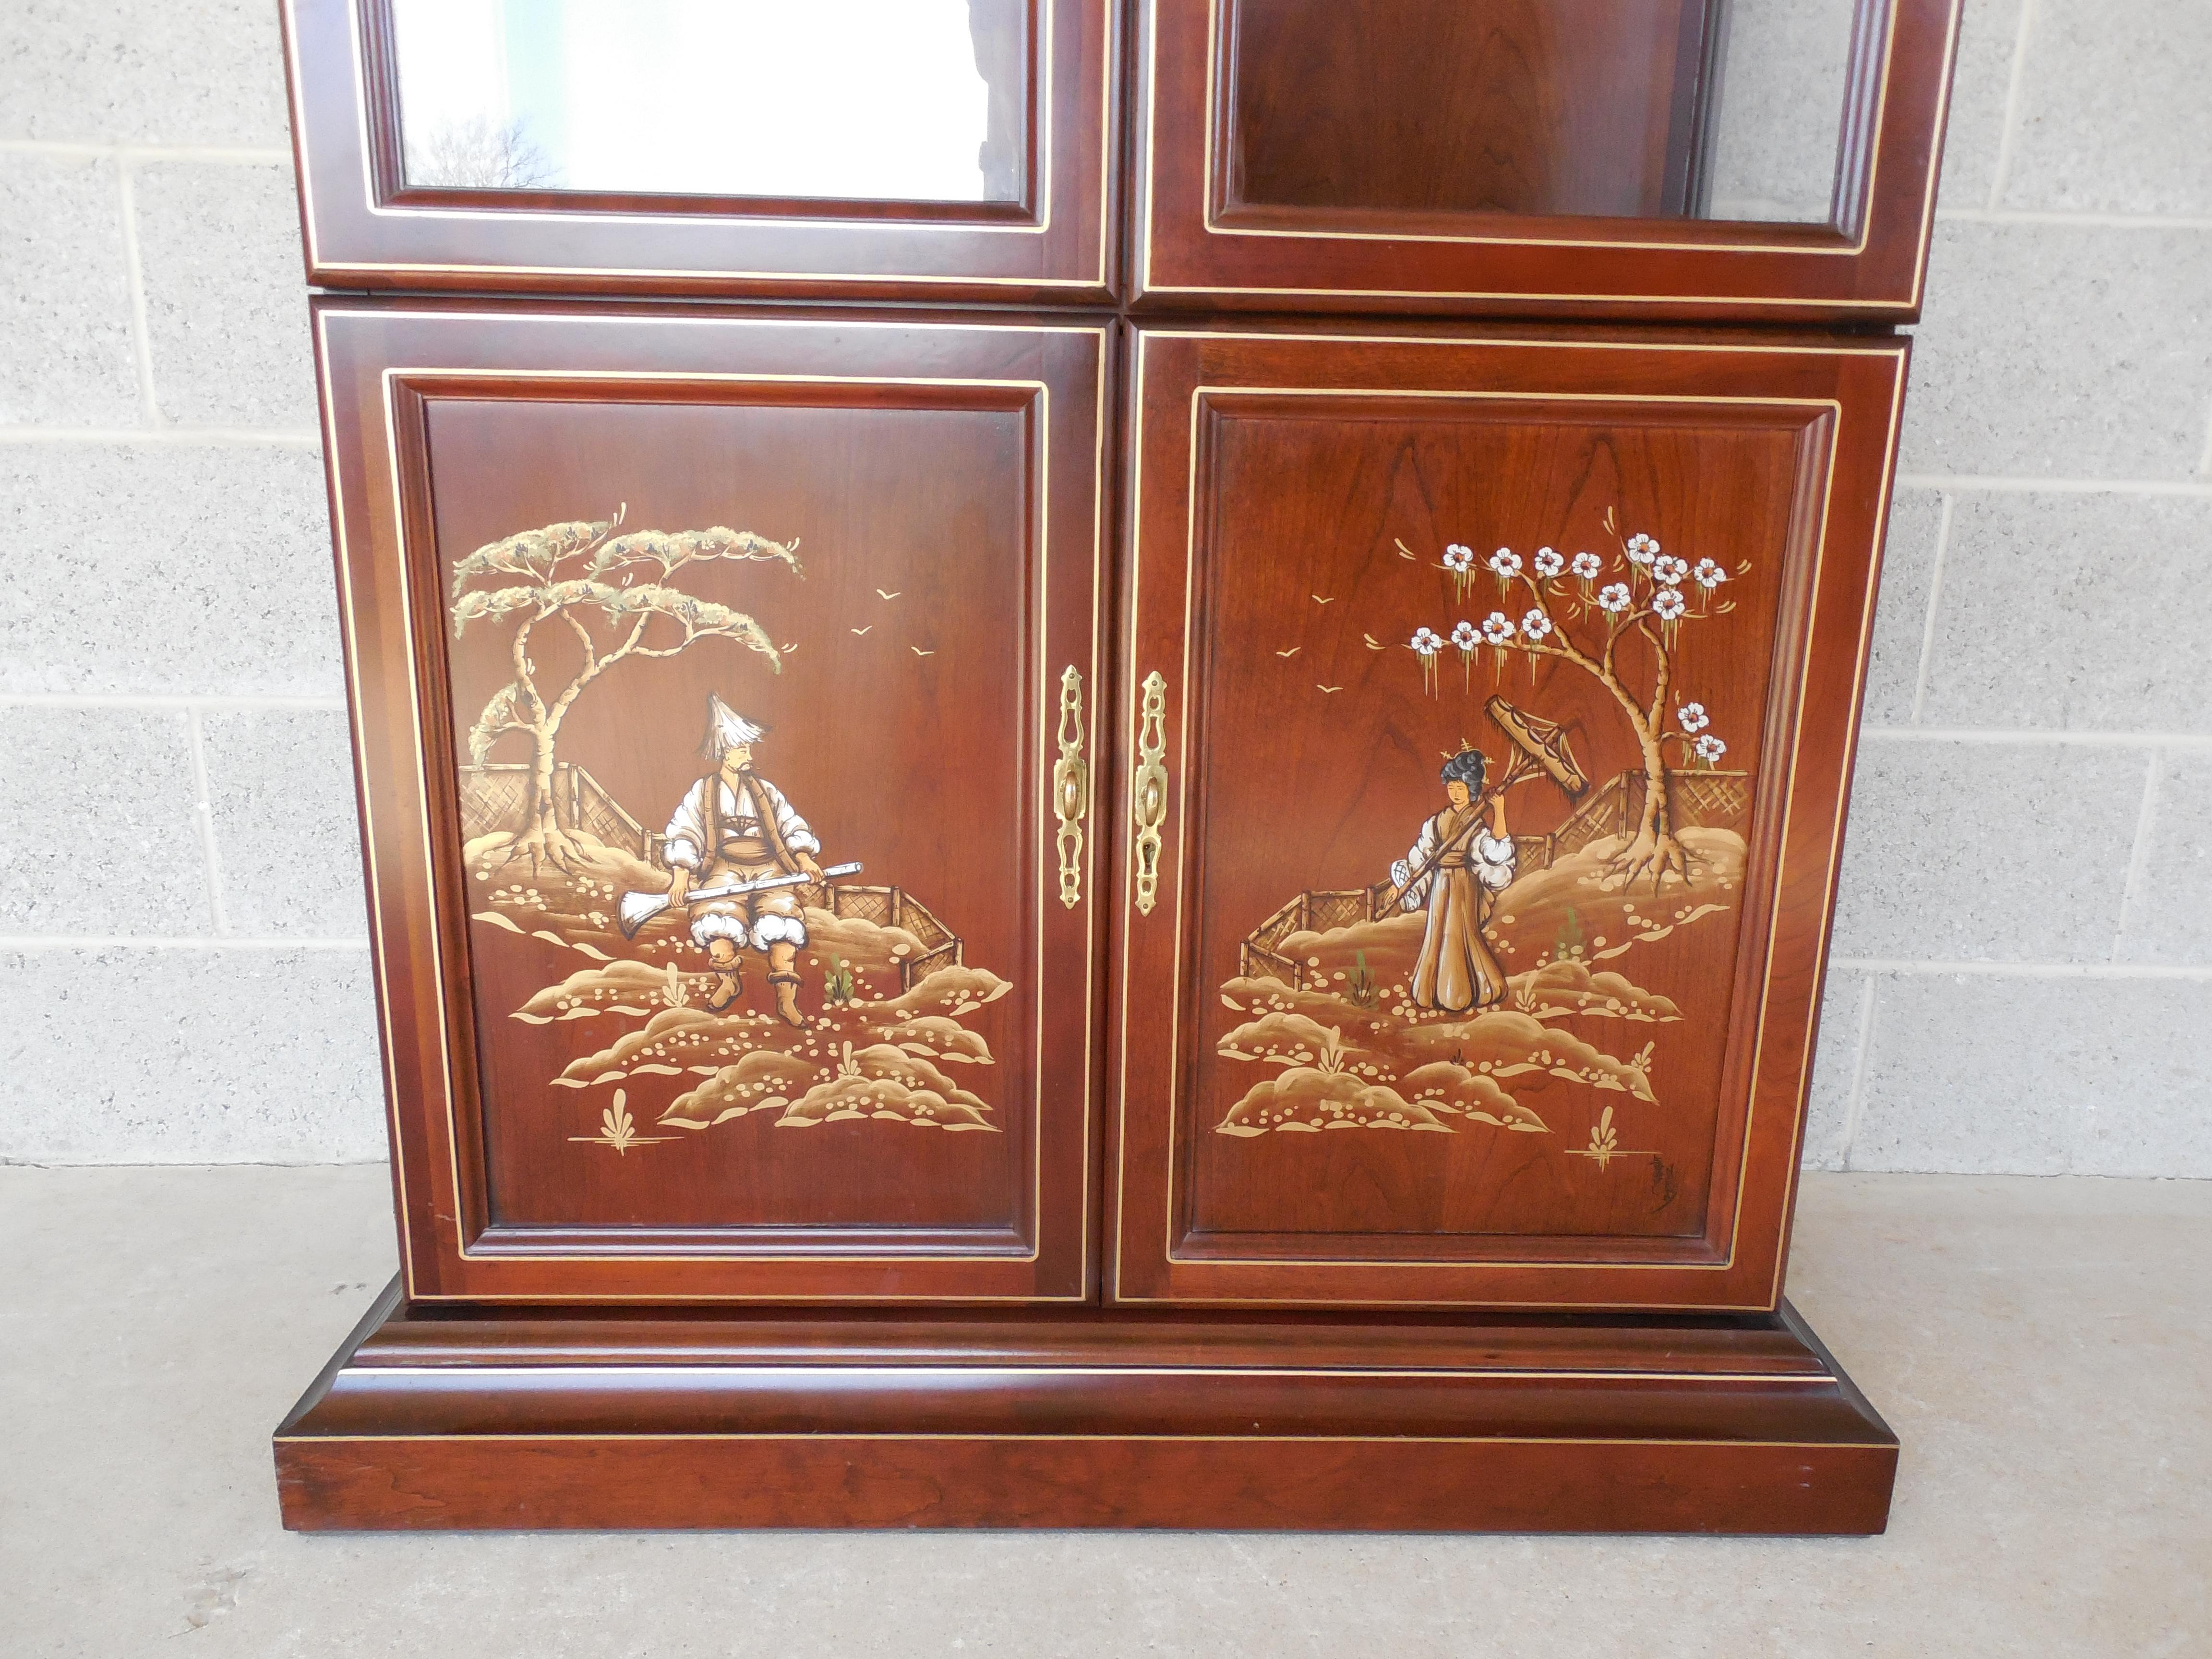 Wood Jasper Cabinet Chinoiserie Hand Paint Decorated 4 Door Lighted Curio  Cabinet For Sale   Image